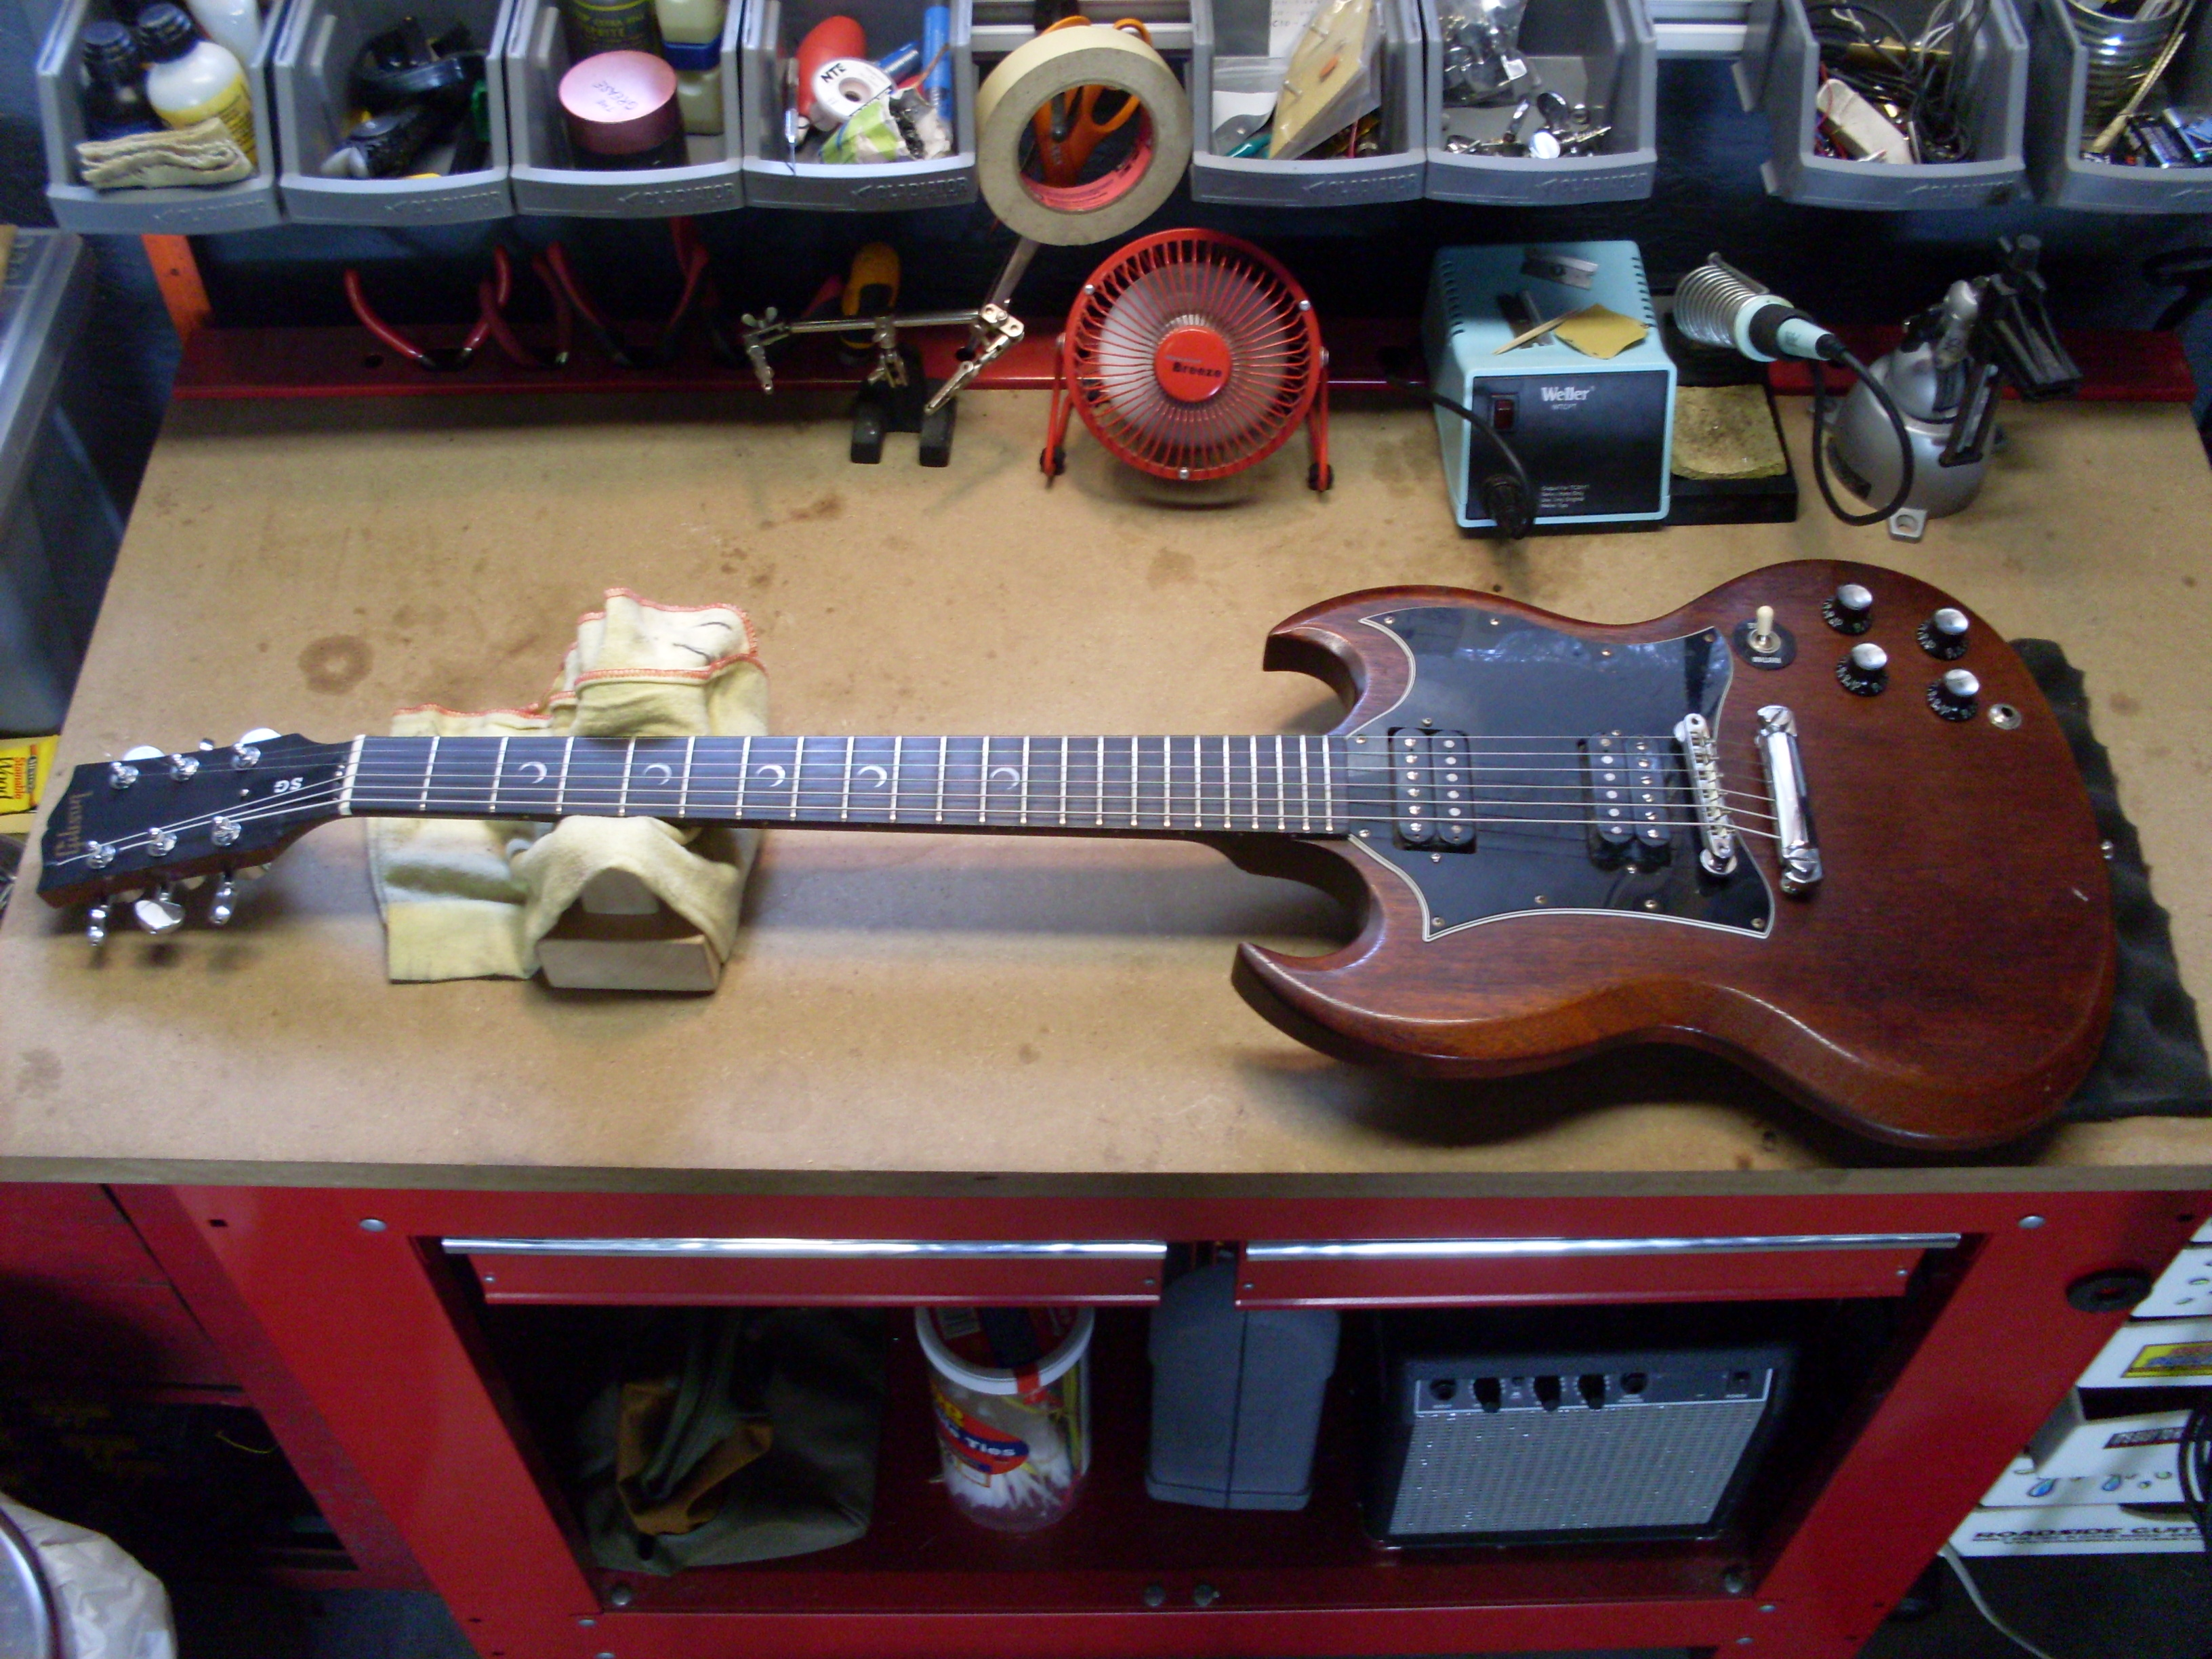 Guitar and Instrument Repair